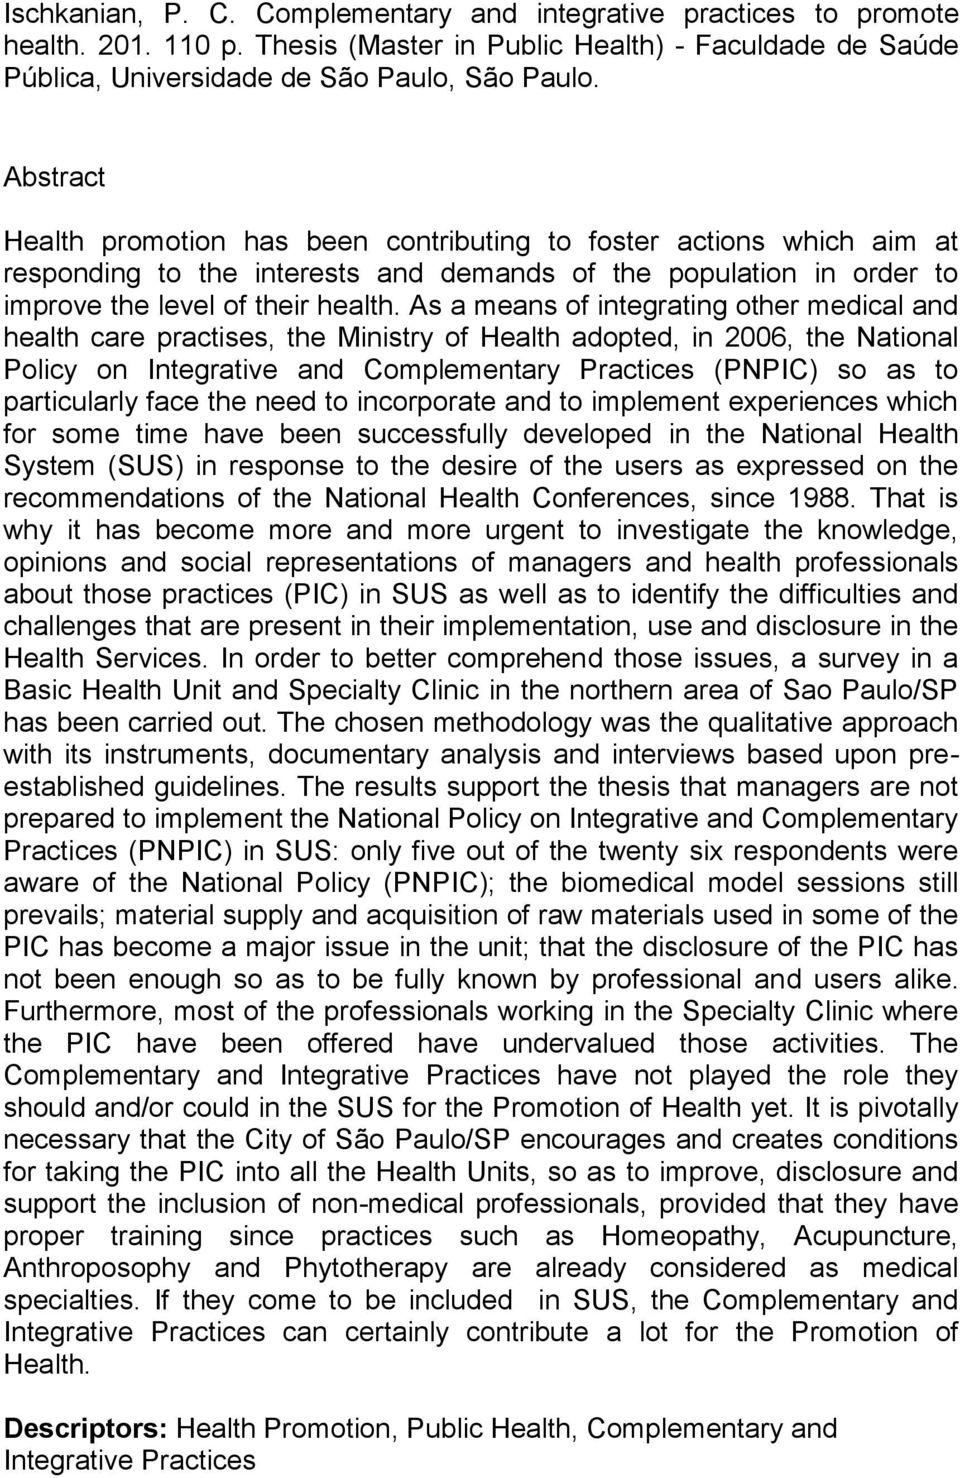 As a means of integrating other medical and health care practises, the Ministry of Health adopted, in 2006, the National Policy on Integrative and Complementary Practices (PNPIC) so as to